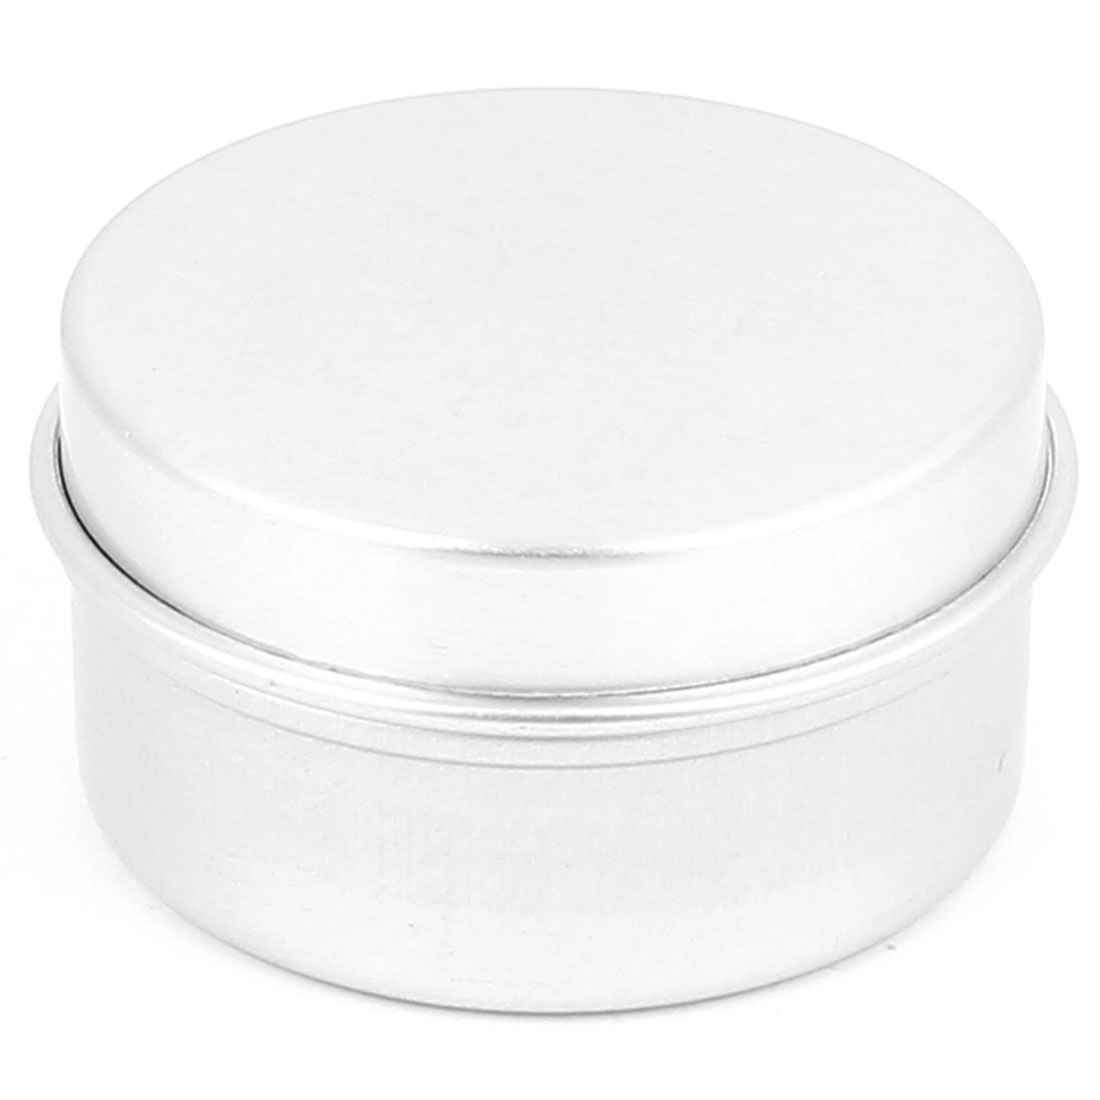 Silver Tone Aluminum Cosmetic Empty Jar Pot Lip Gloss Balm Eyeshadow Box Container Holder 20g